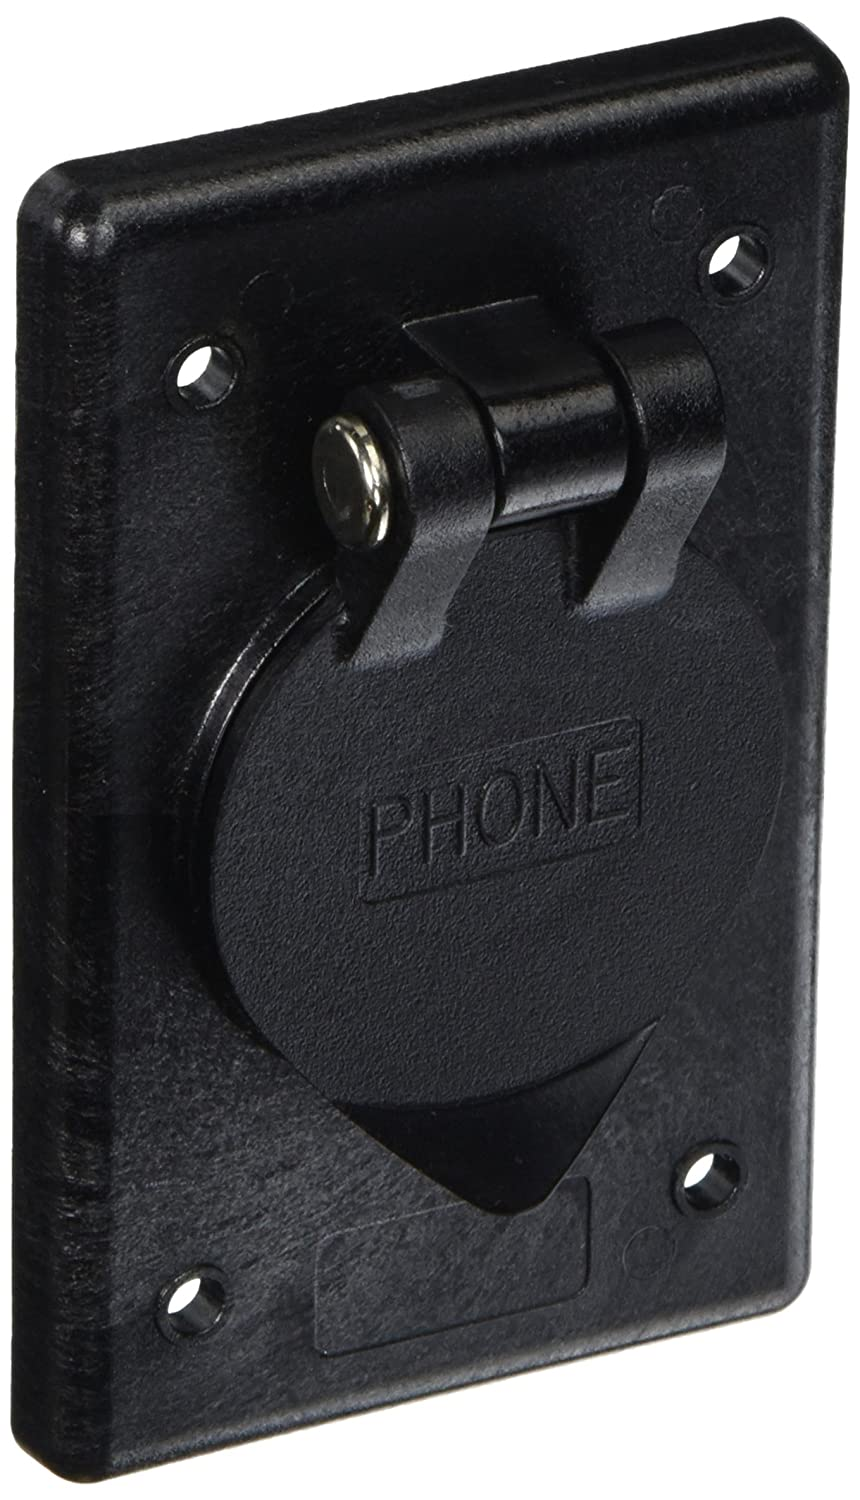 Hubbell Wiring Systems Ph6597 Polycarbonate Rectangular Phone Outlet With Gasketed And Spring Loaded Lift Cover Black Industrial Scientific